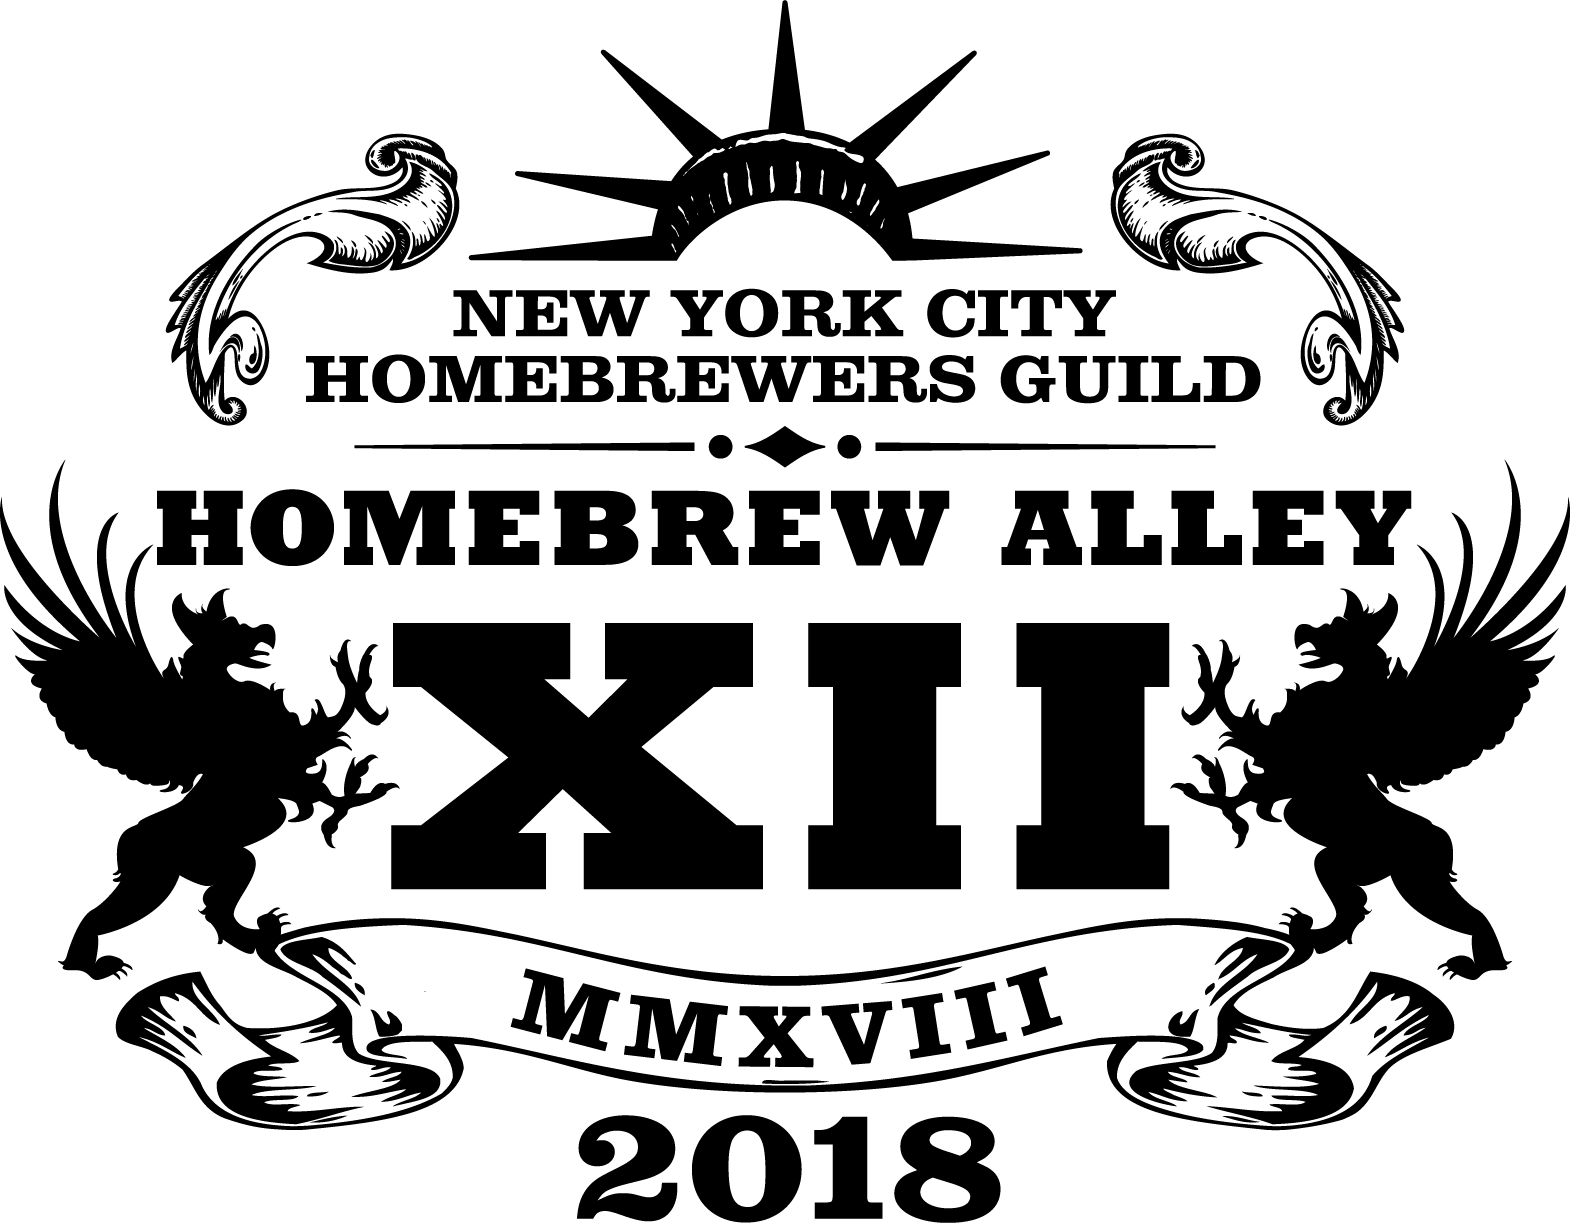 Home-Brew-Alley-XII-LOGO-01.png